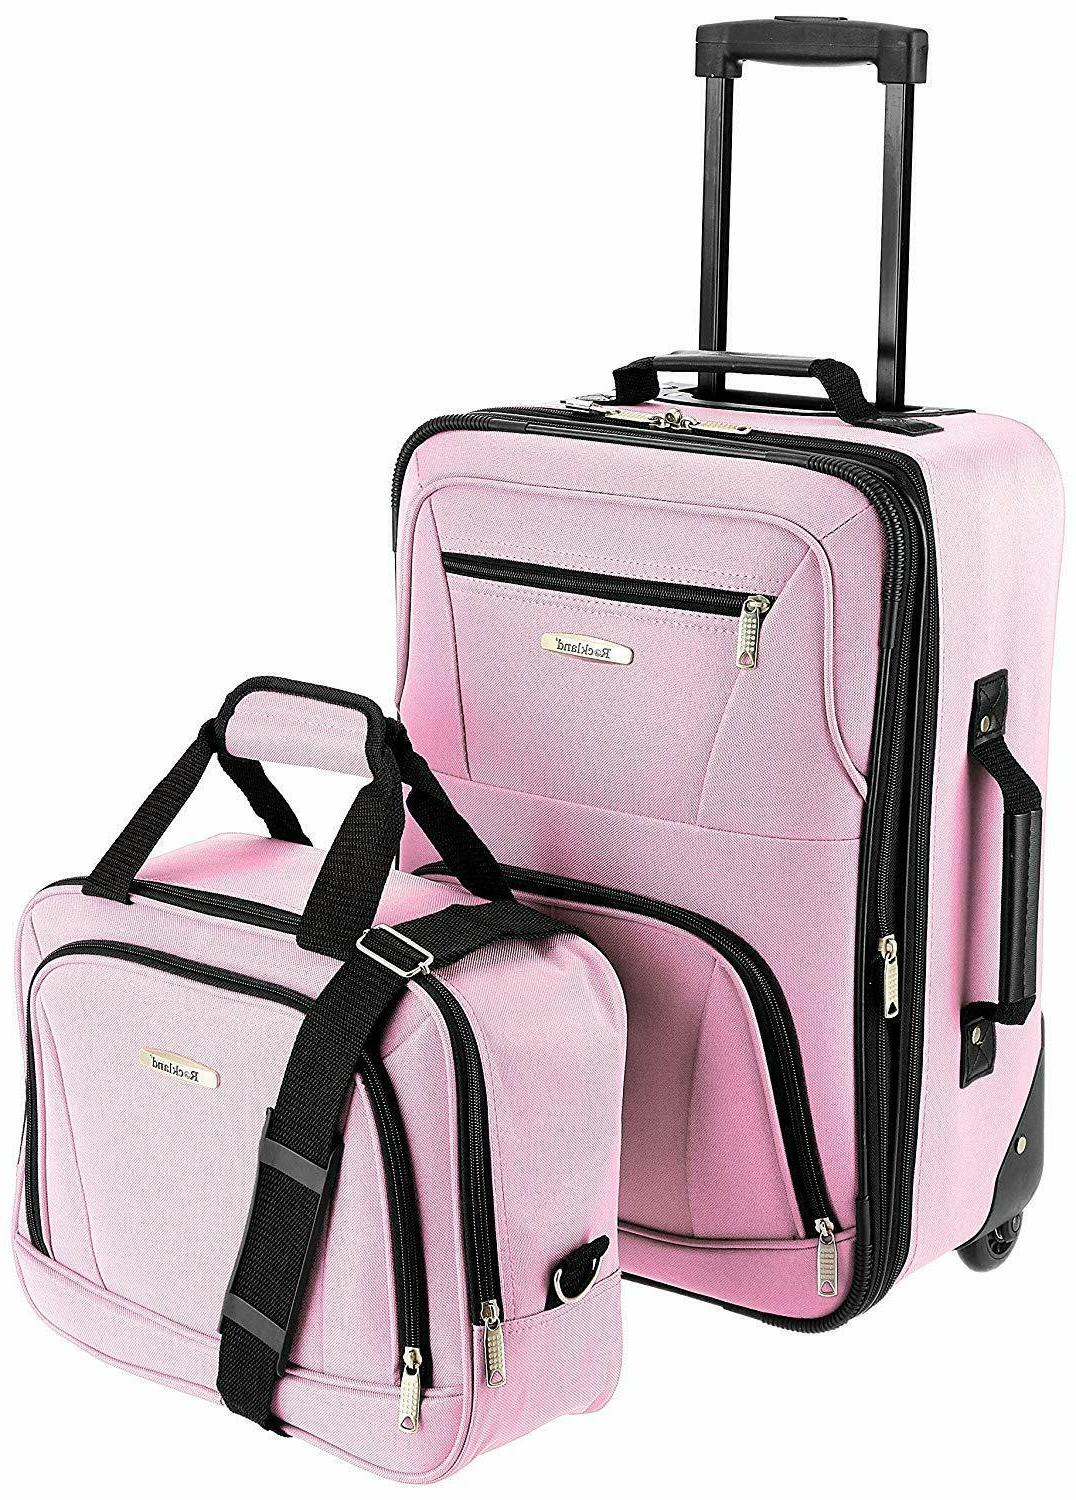 luggage 2 piece set pink one size